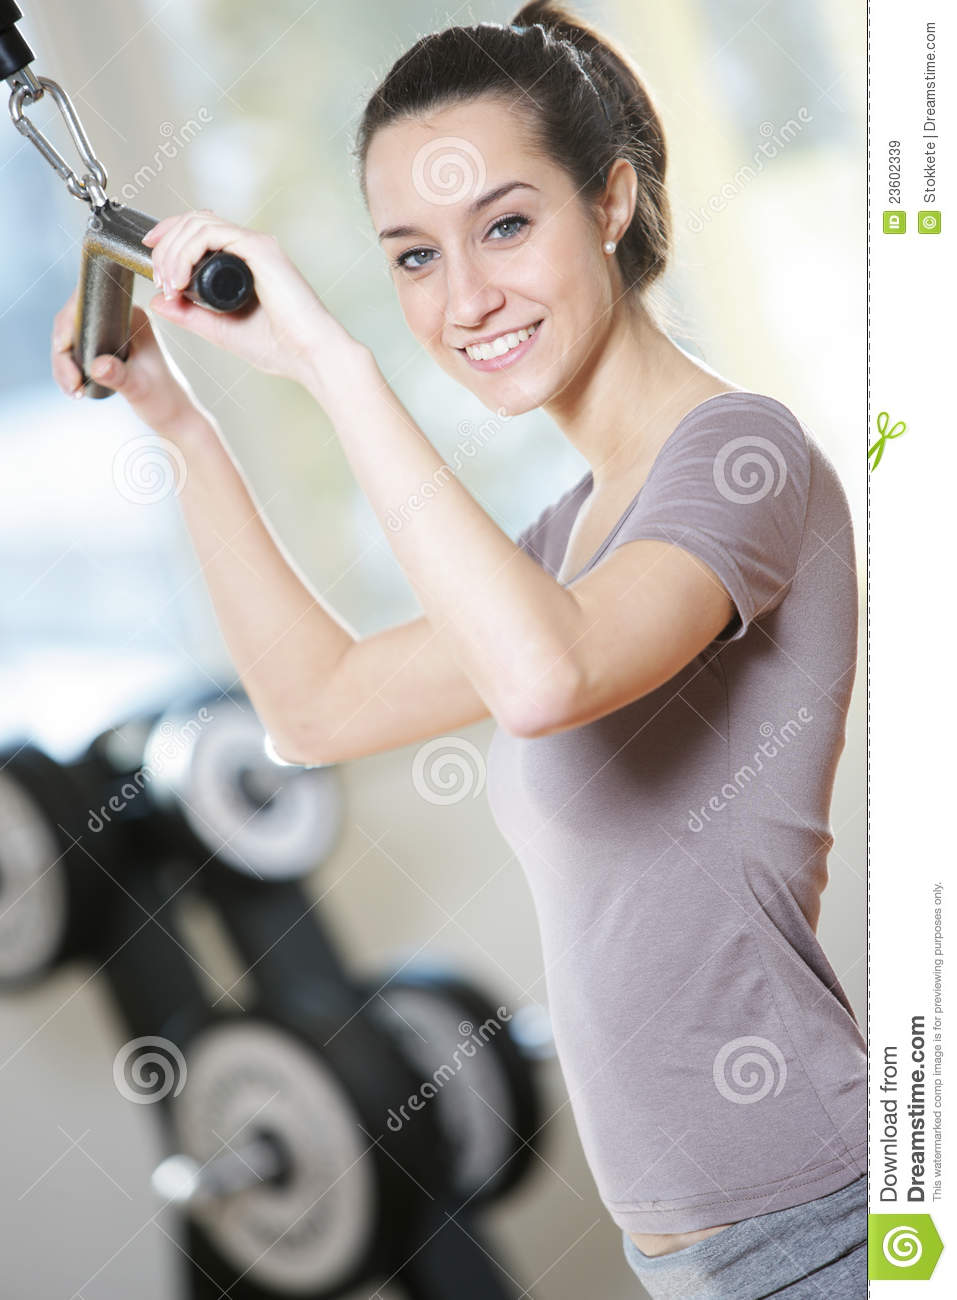 Woman doing on a weight machine at the health club